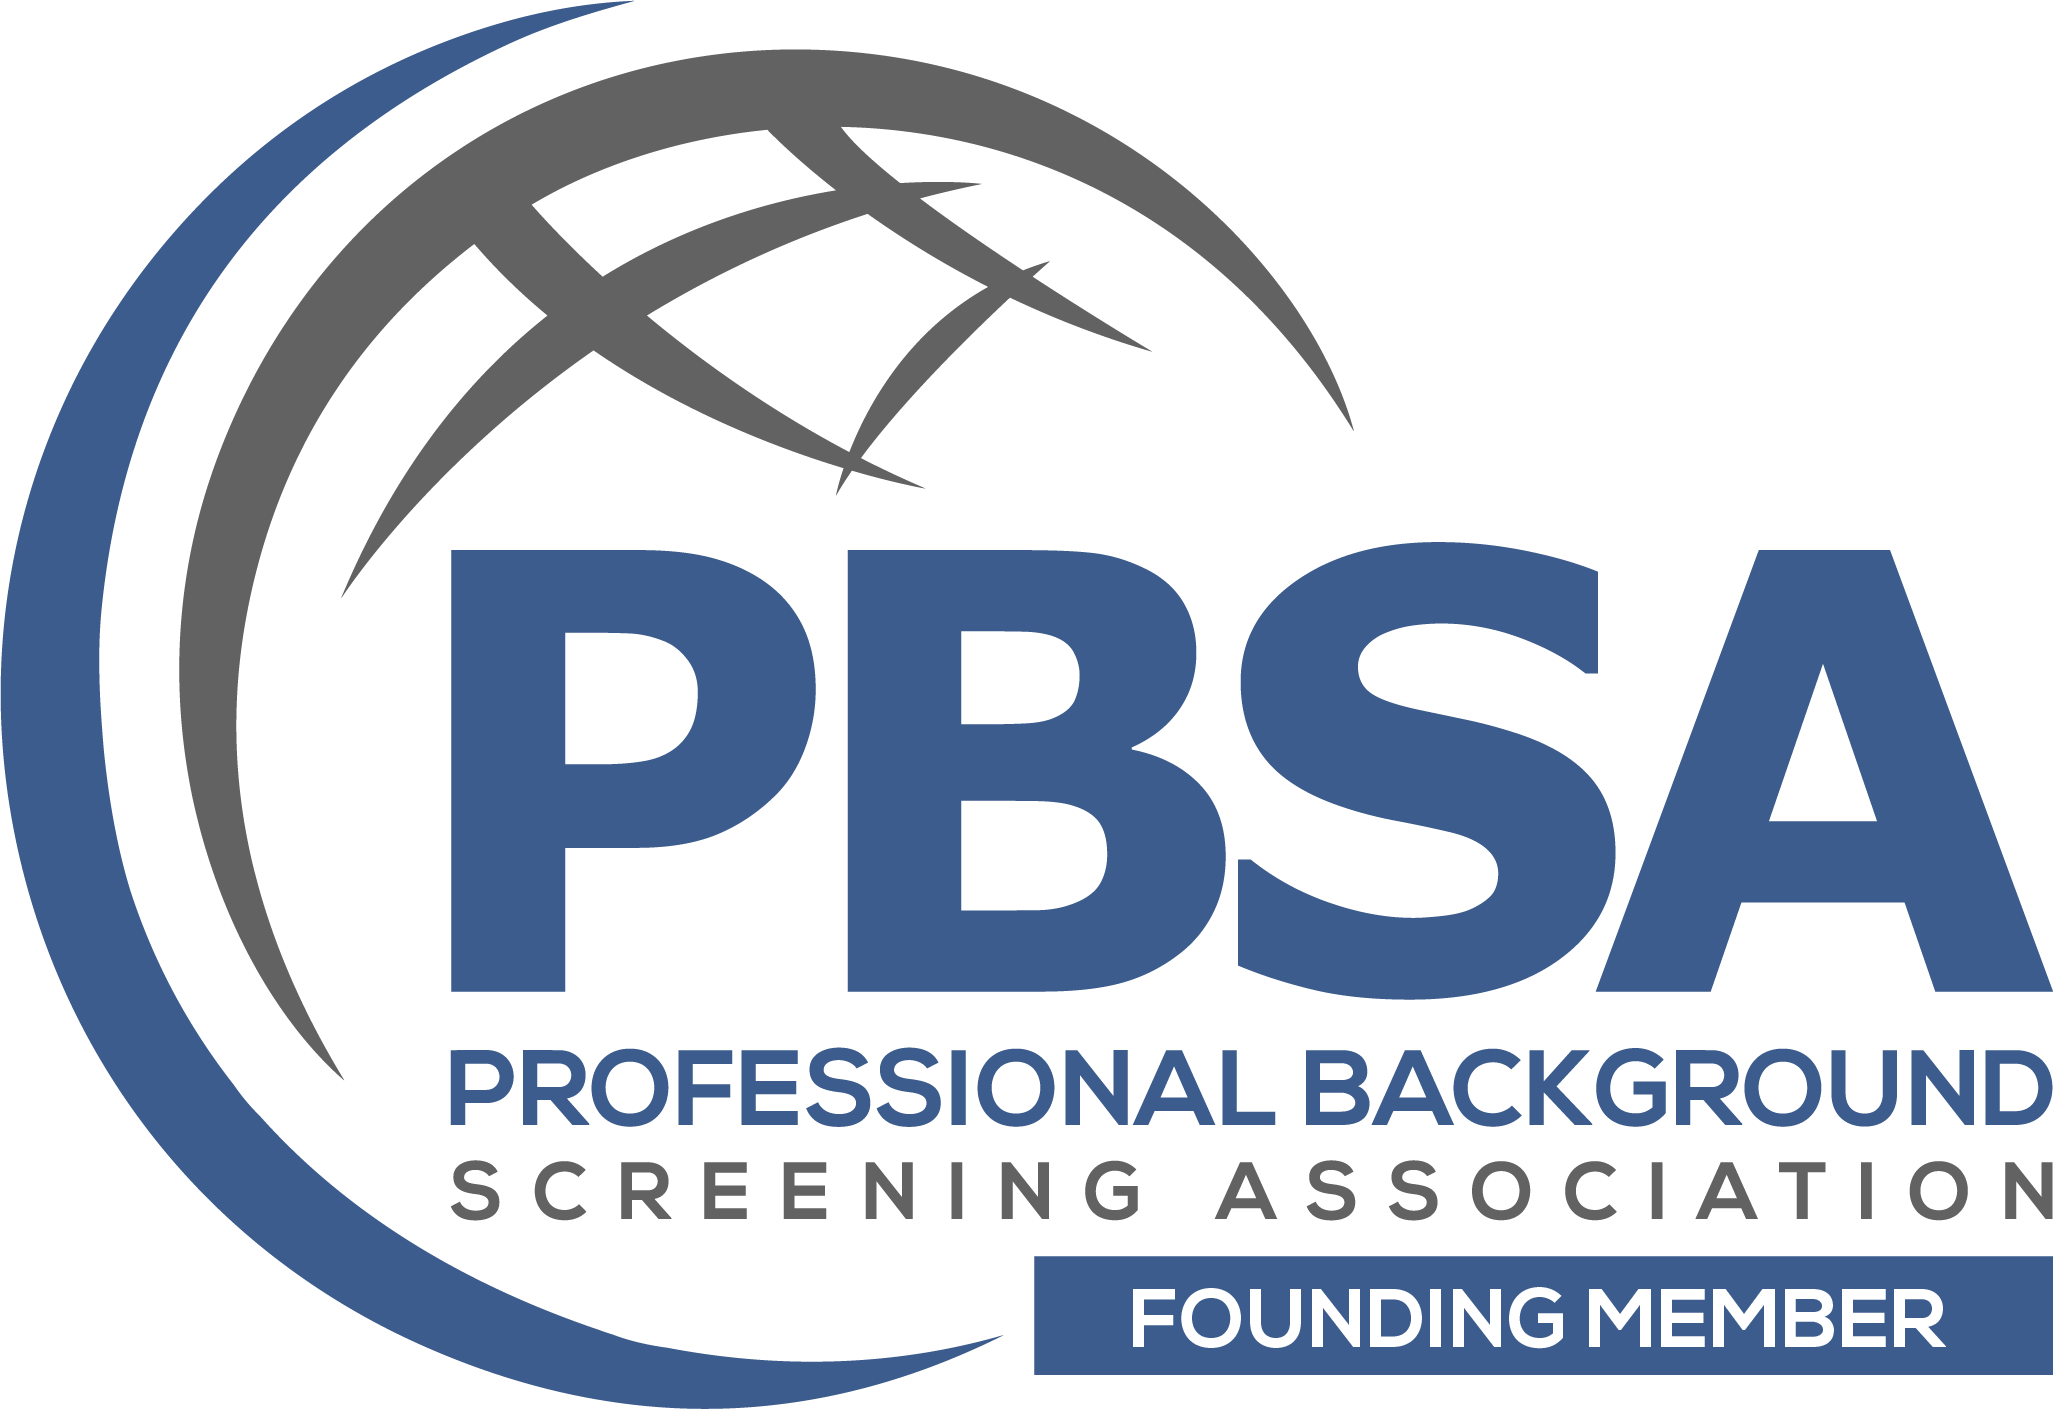 Founding Member of National Association of Professional Background Screeners